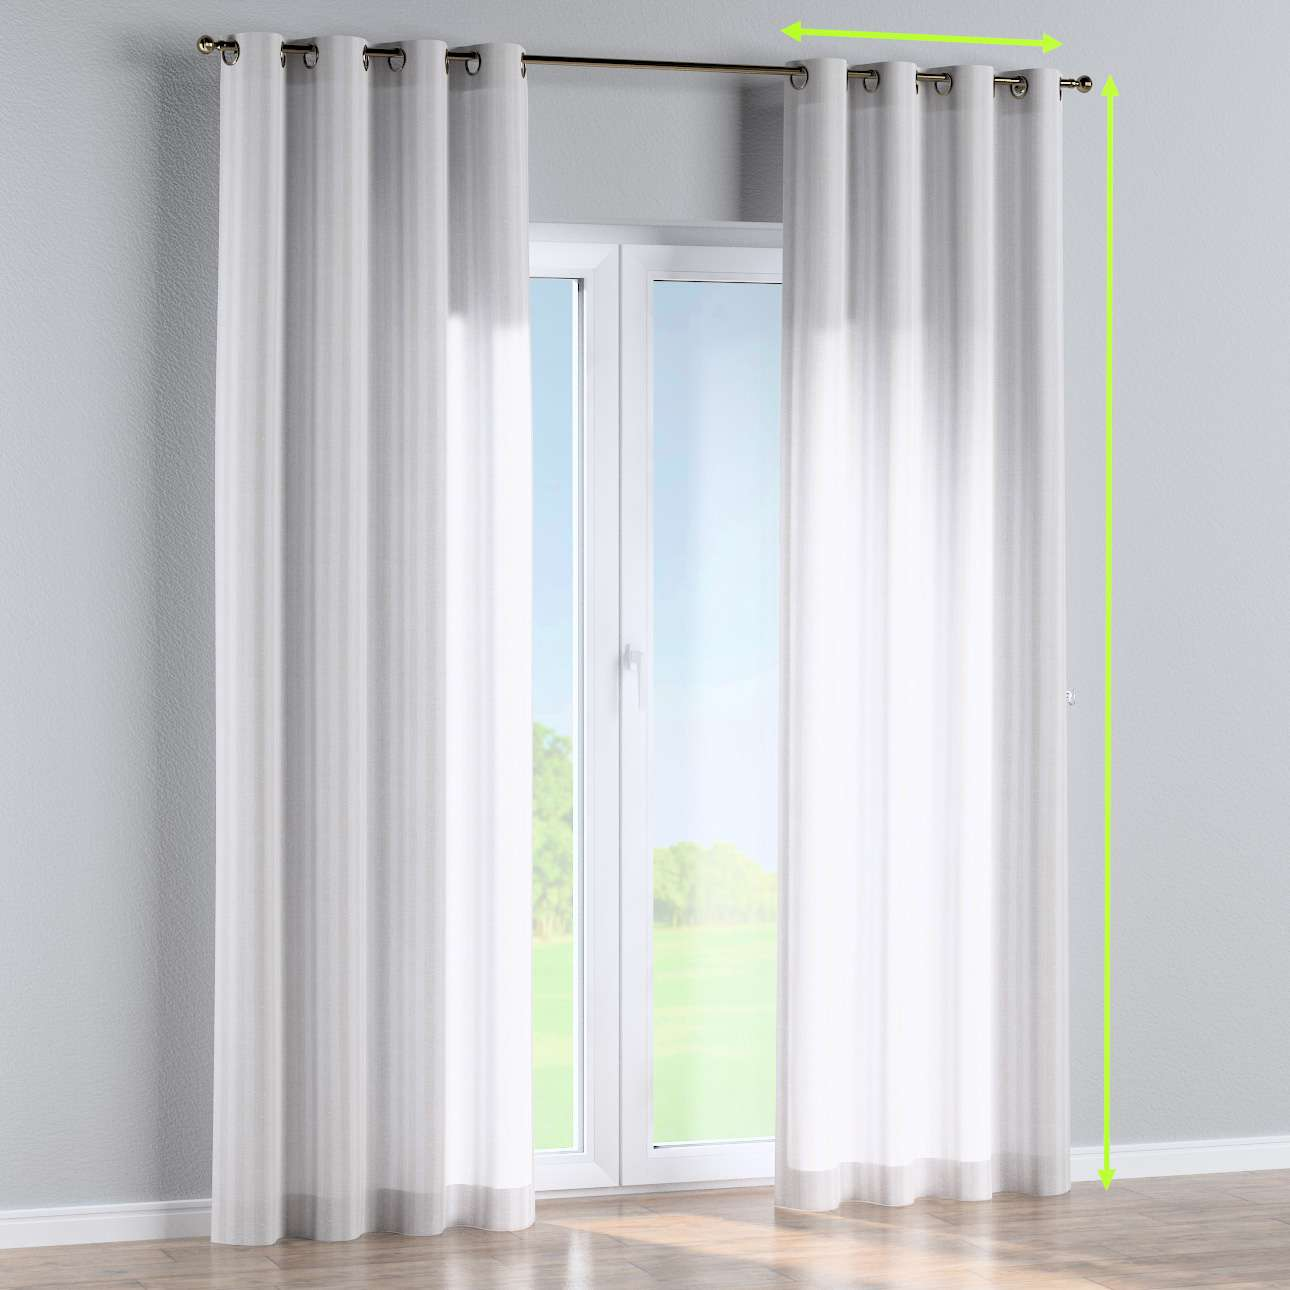 Eyelet curtains in collection Linen , fabric: 392-03